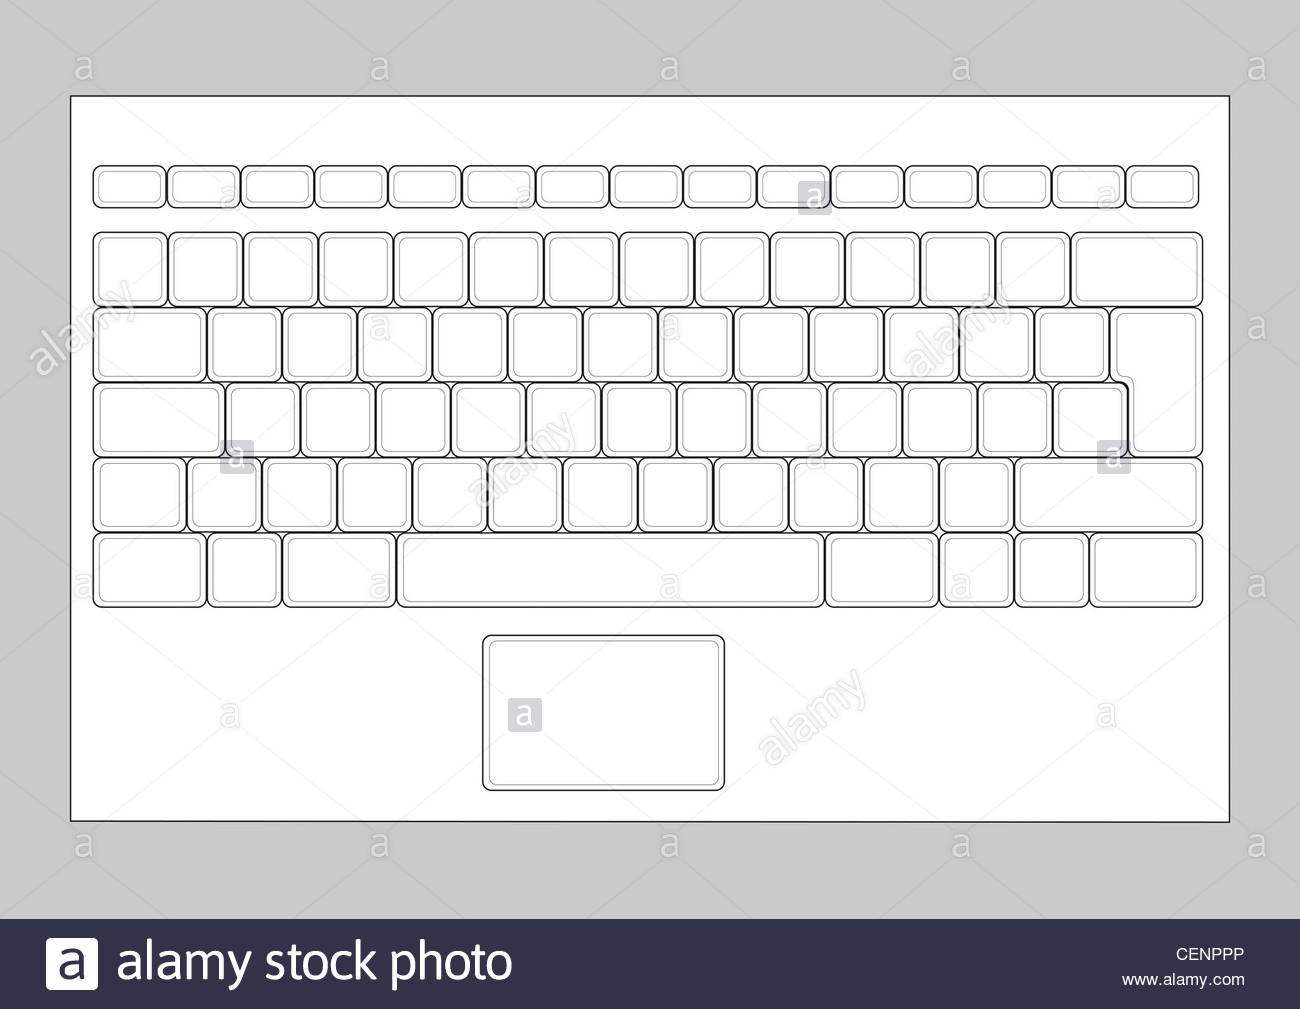 Brilliant Laptop Blank Keyboard Layout Computer Input Element Stock Photo Wiring Cloud Hisonuggs Outletorg